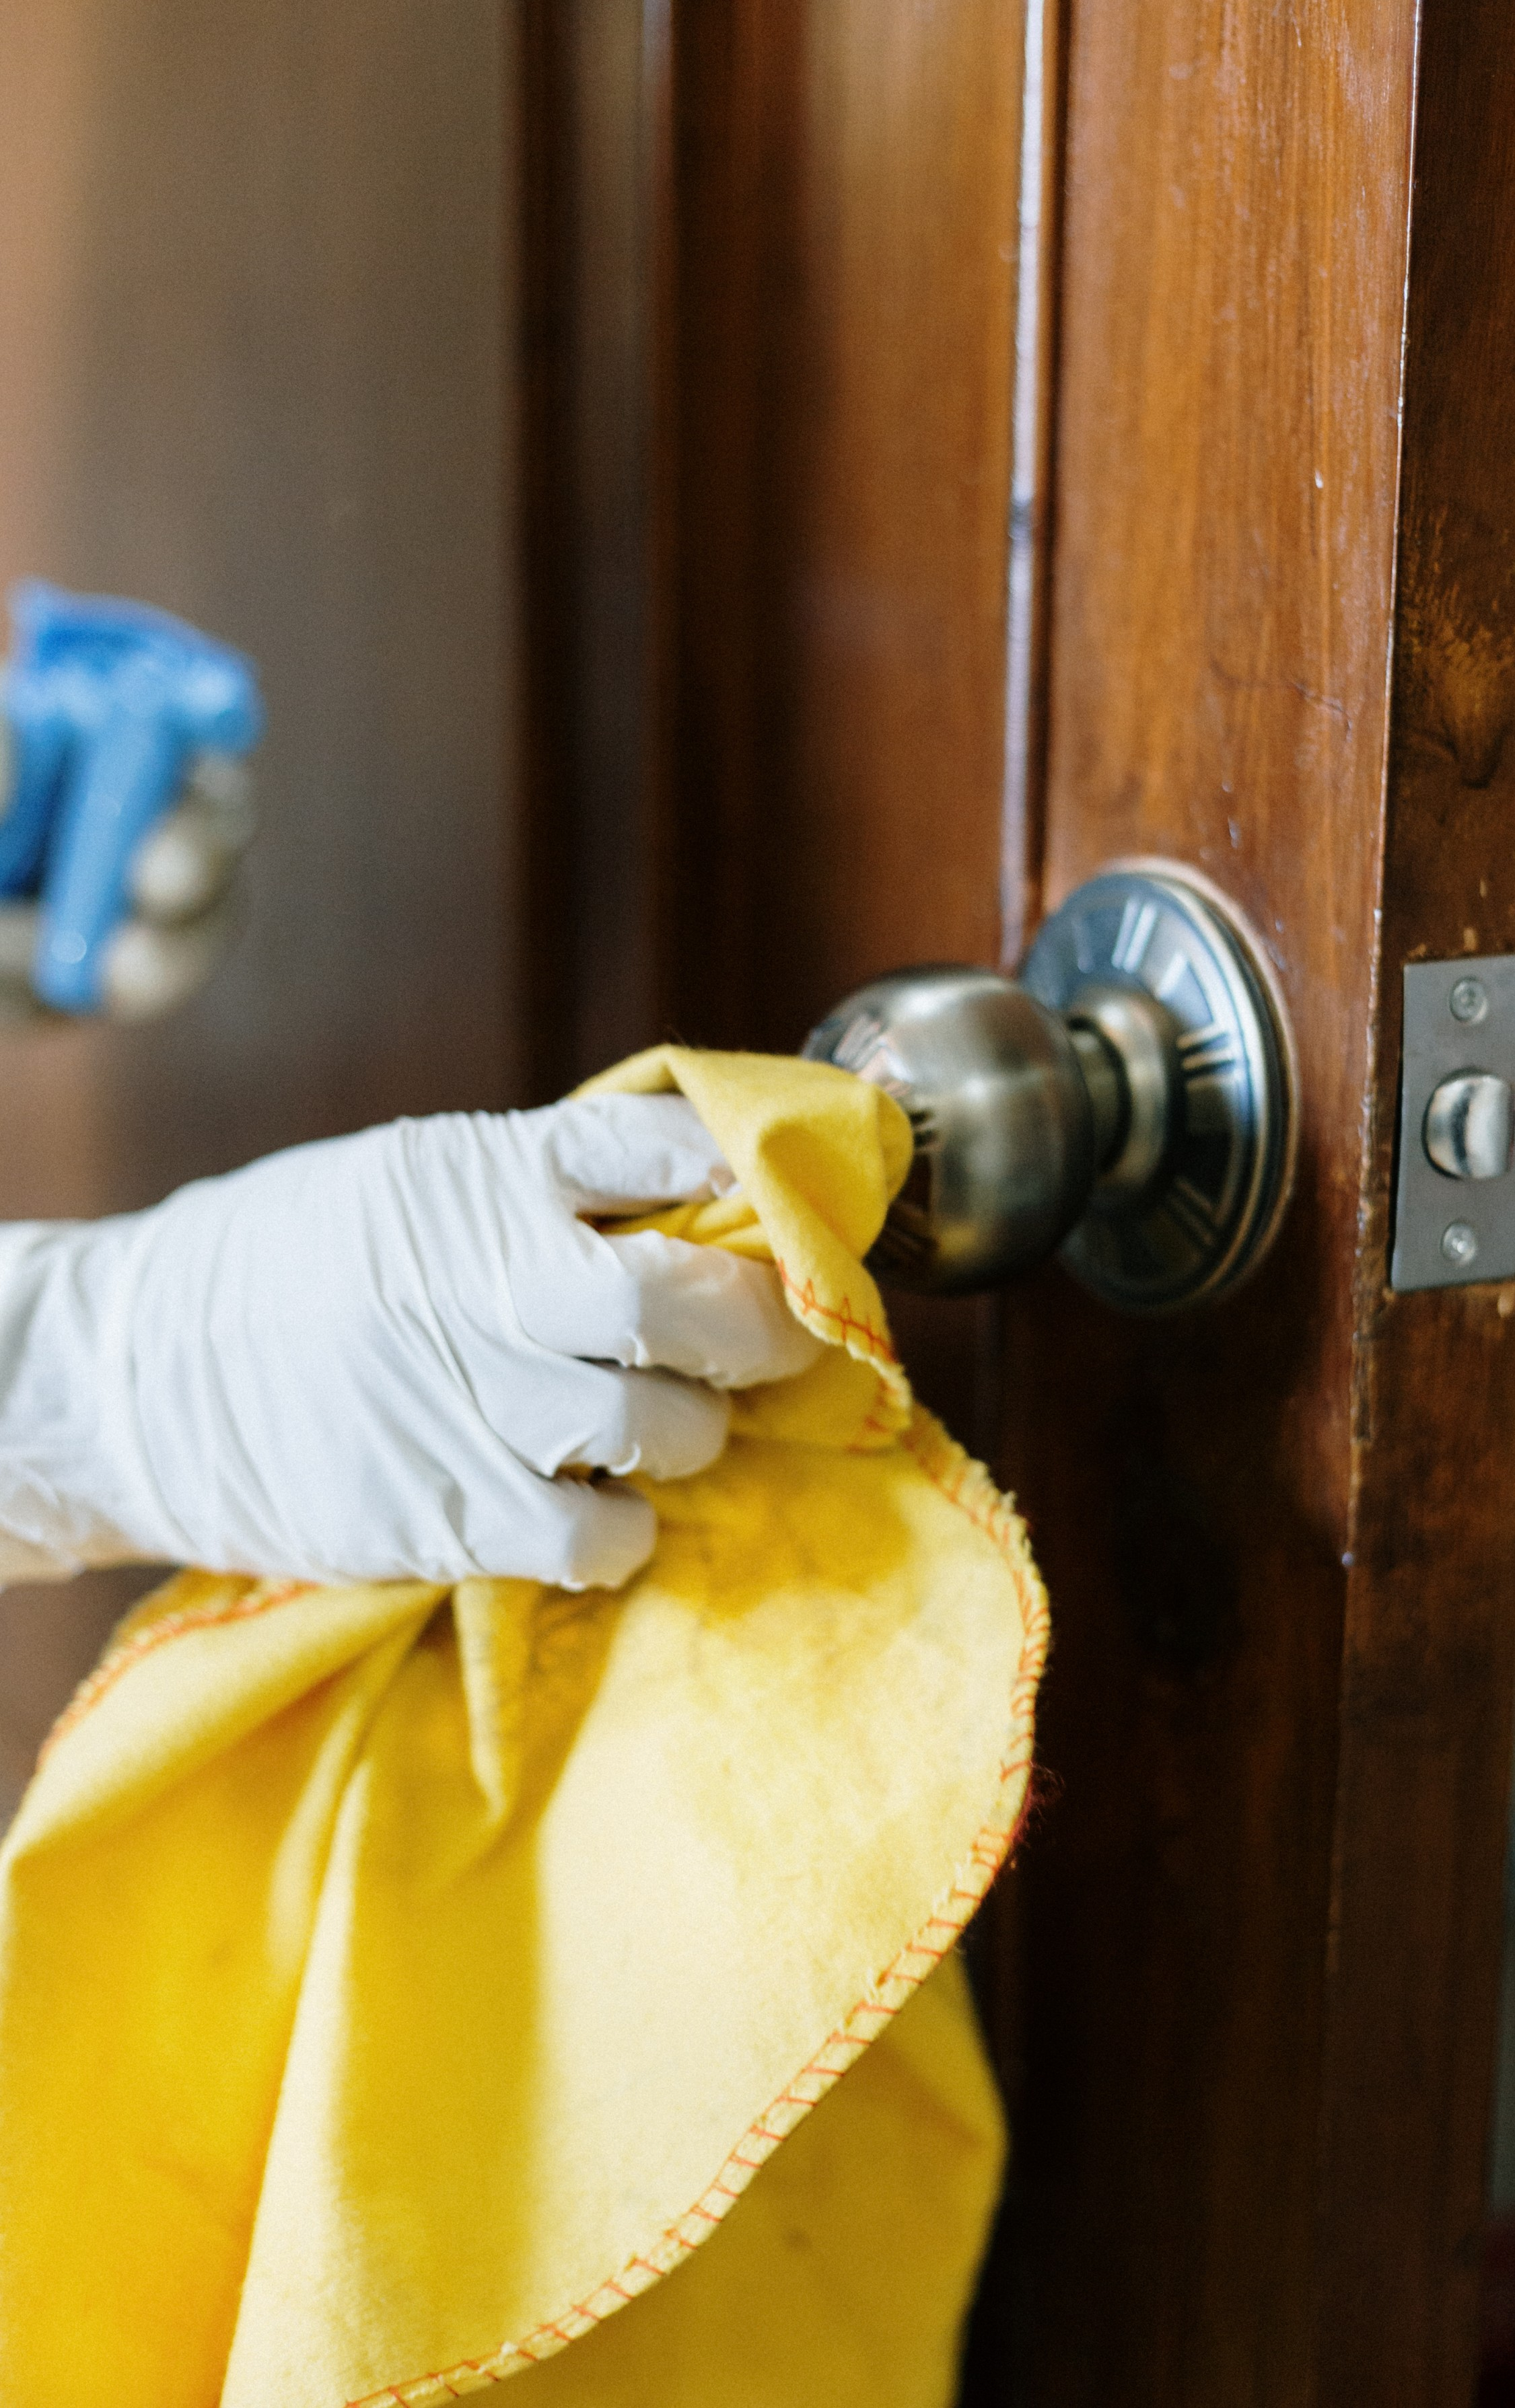 professional cleaning and sanitization services in Islamabad, Rawalpindi and Lahore.